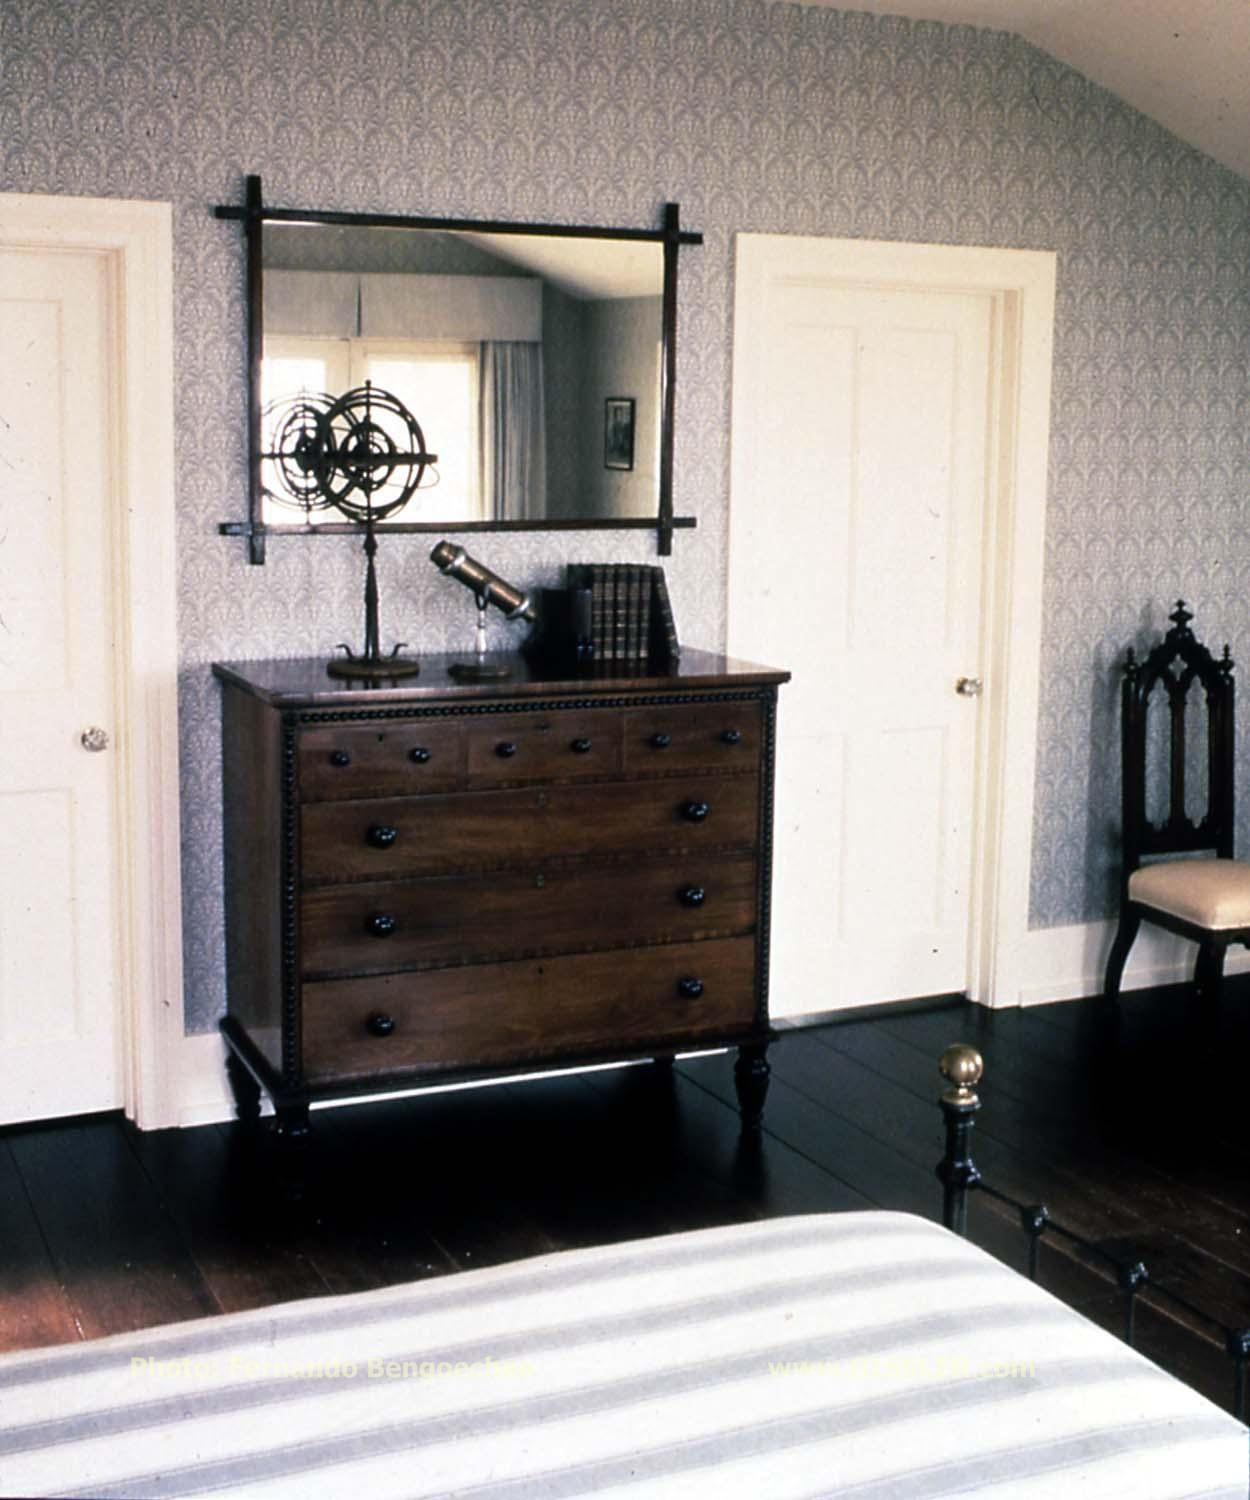 Antique furniture with quietly strong silhouettes in the Guest Room of a  home overlooking Mecox bay. Long IslandAntique ... - Antique Furniture With Quietly Strong Silhouettes In The Guest Room